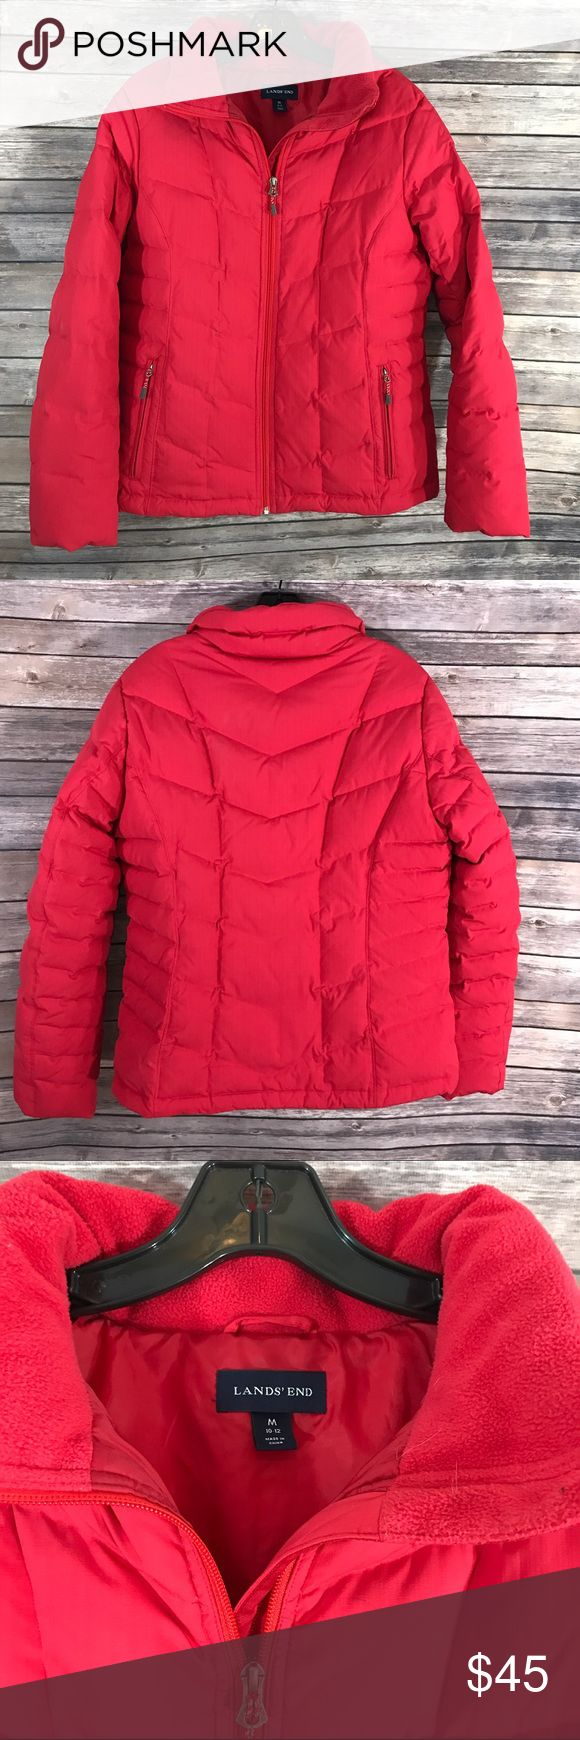 Lands End Size Medium 10-12 Womens Puffer Coat Red Measurements: (in inches) - Underarm to underarm: 21 - Length: 26 - Sleeve:24 Good, gently used condition Lands' End Jackets & Coats Puffers